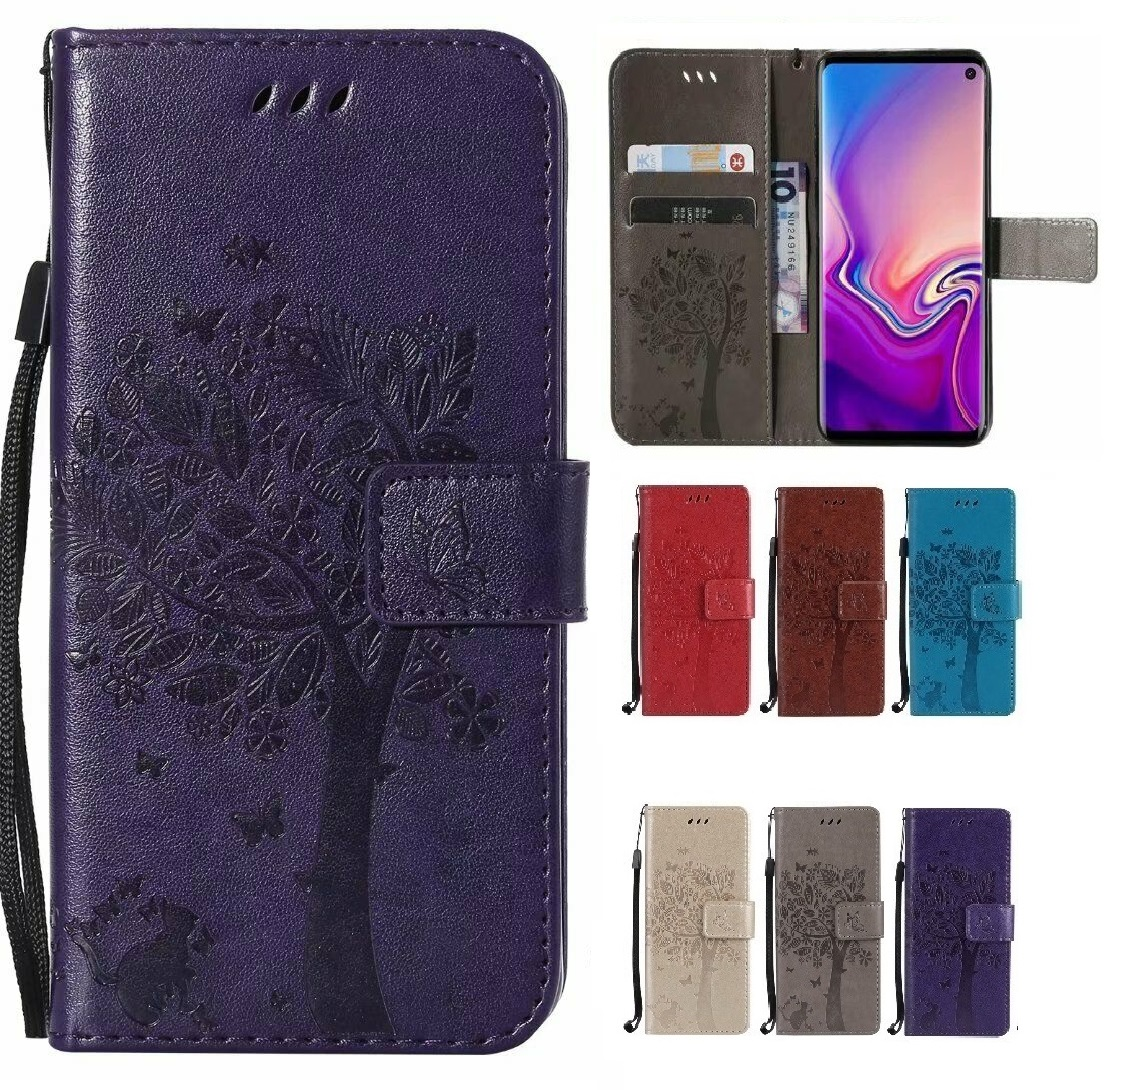 Case TOP flip PU Leather Cover With View For FLY FS554 POWER PLUS FHD IQ4414 FS553 FS551 FS550 FS530 FS528 FS527 image